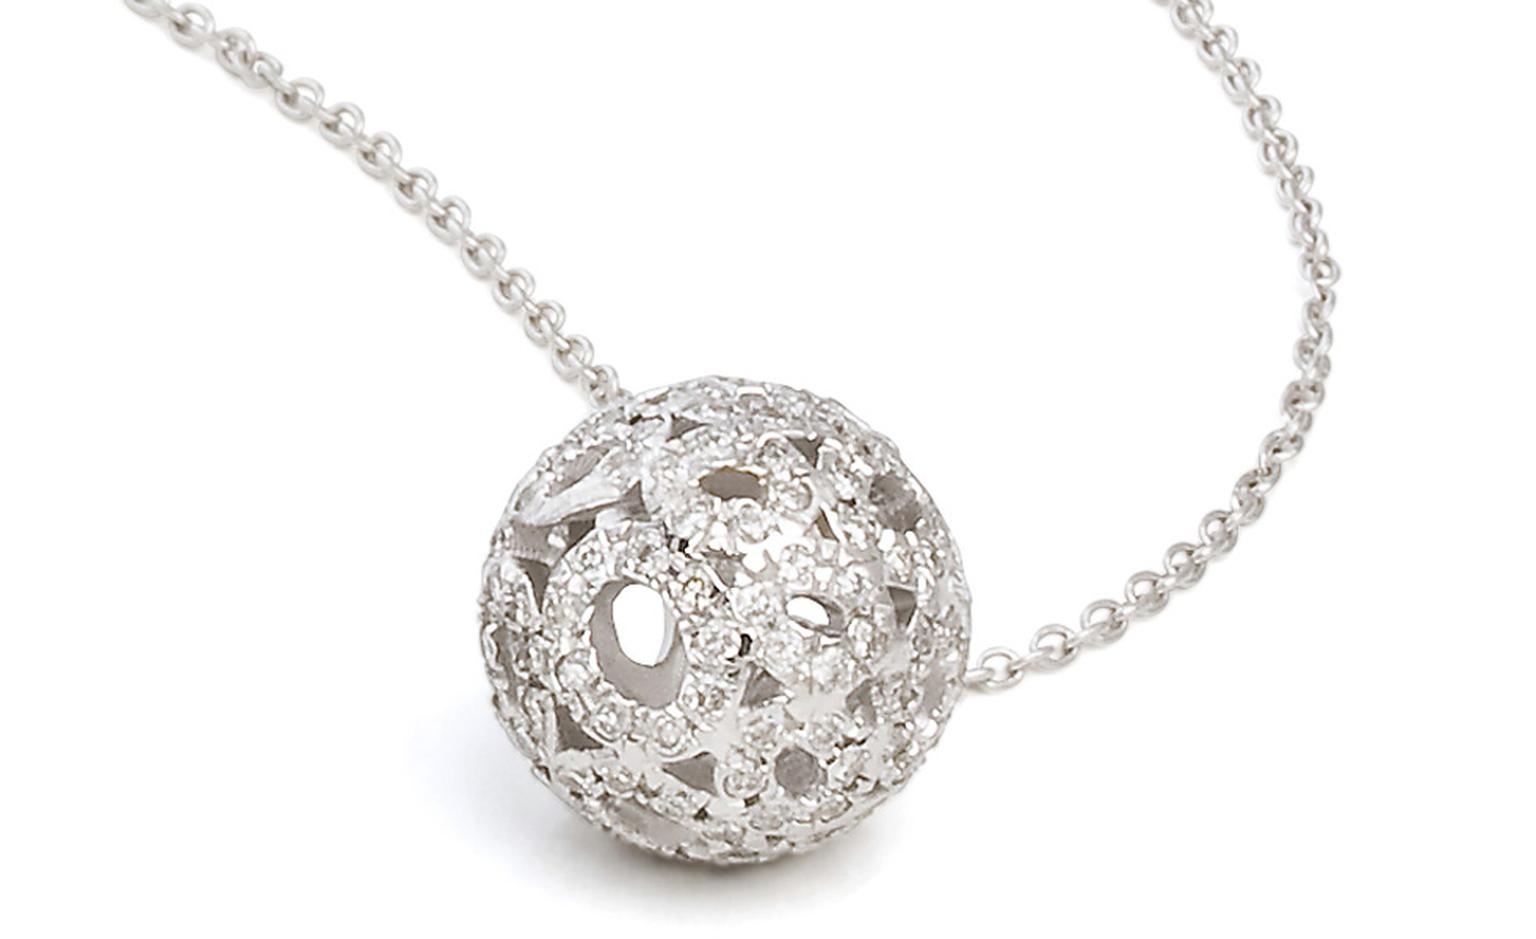 Joanna Dahdah white gold and diamond necklace £1,100